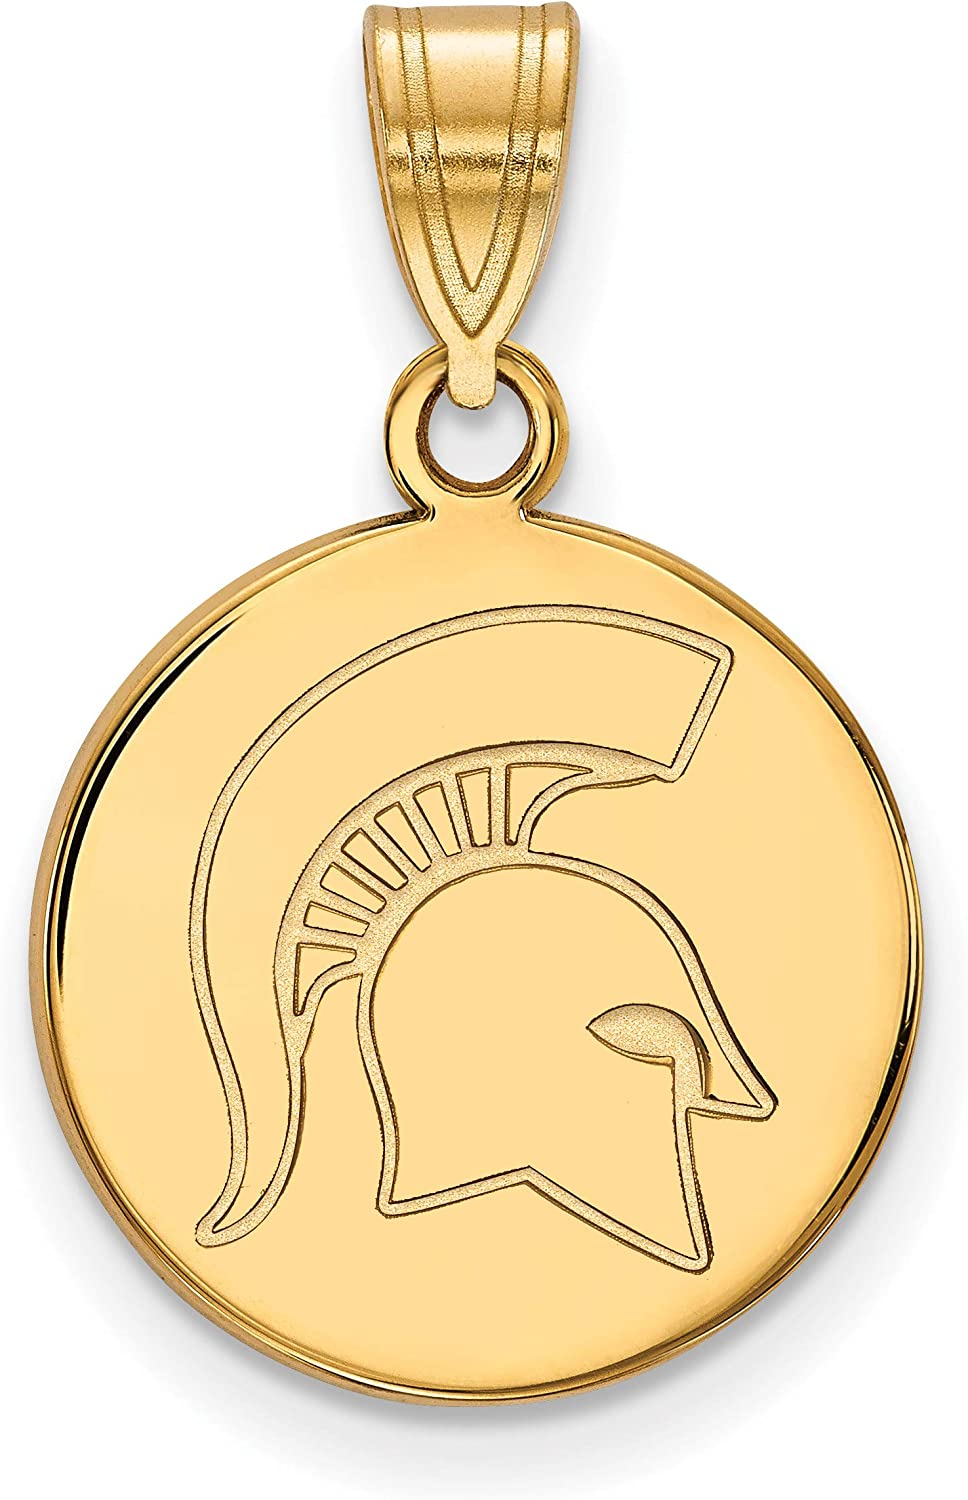 Michigan State University Spartans Mascot Pendant Necklace in Sterling Silver 13x11mm 18 Inches